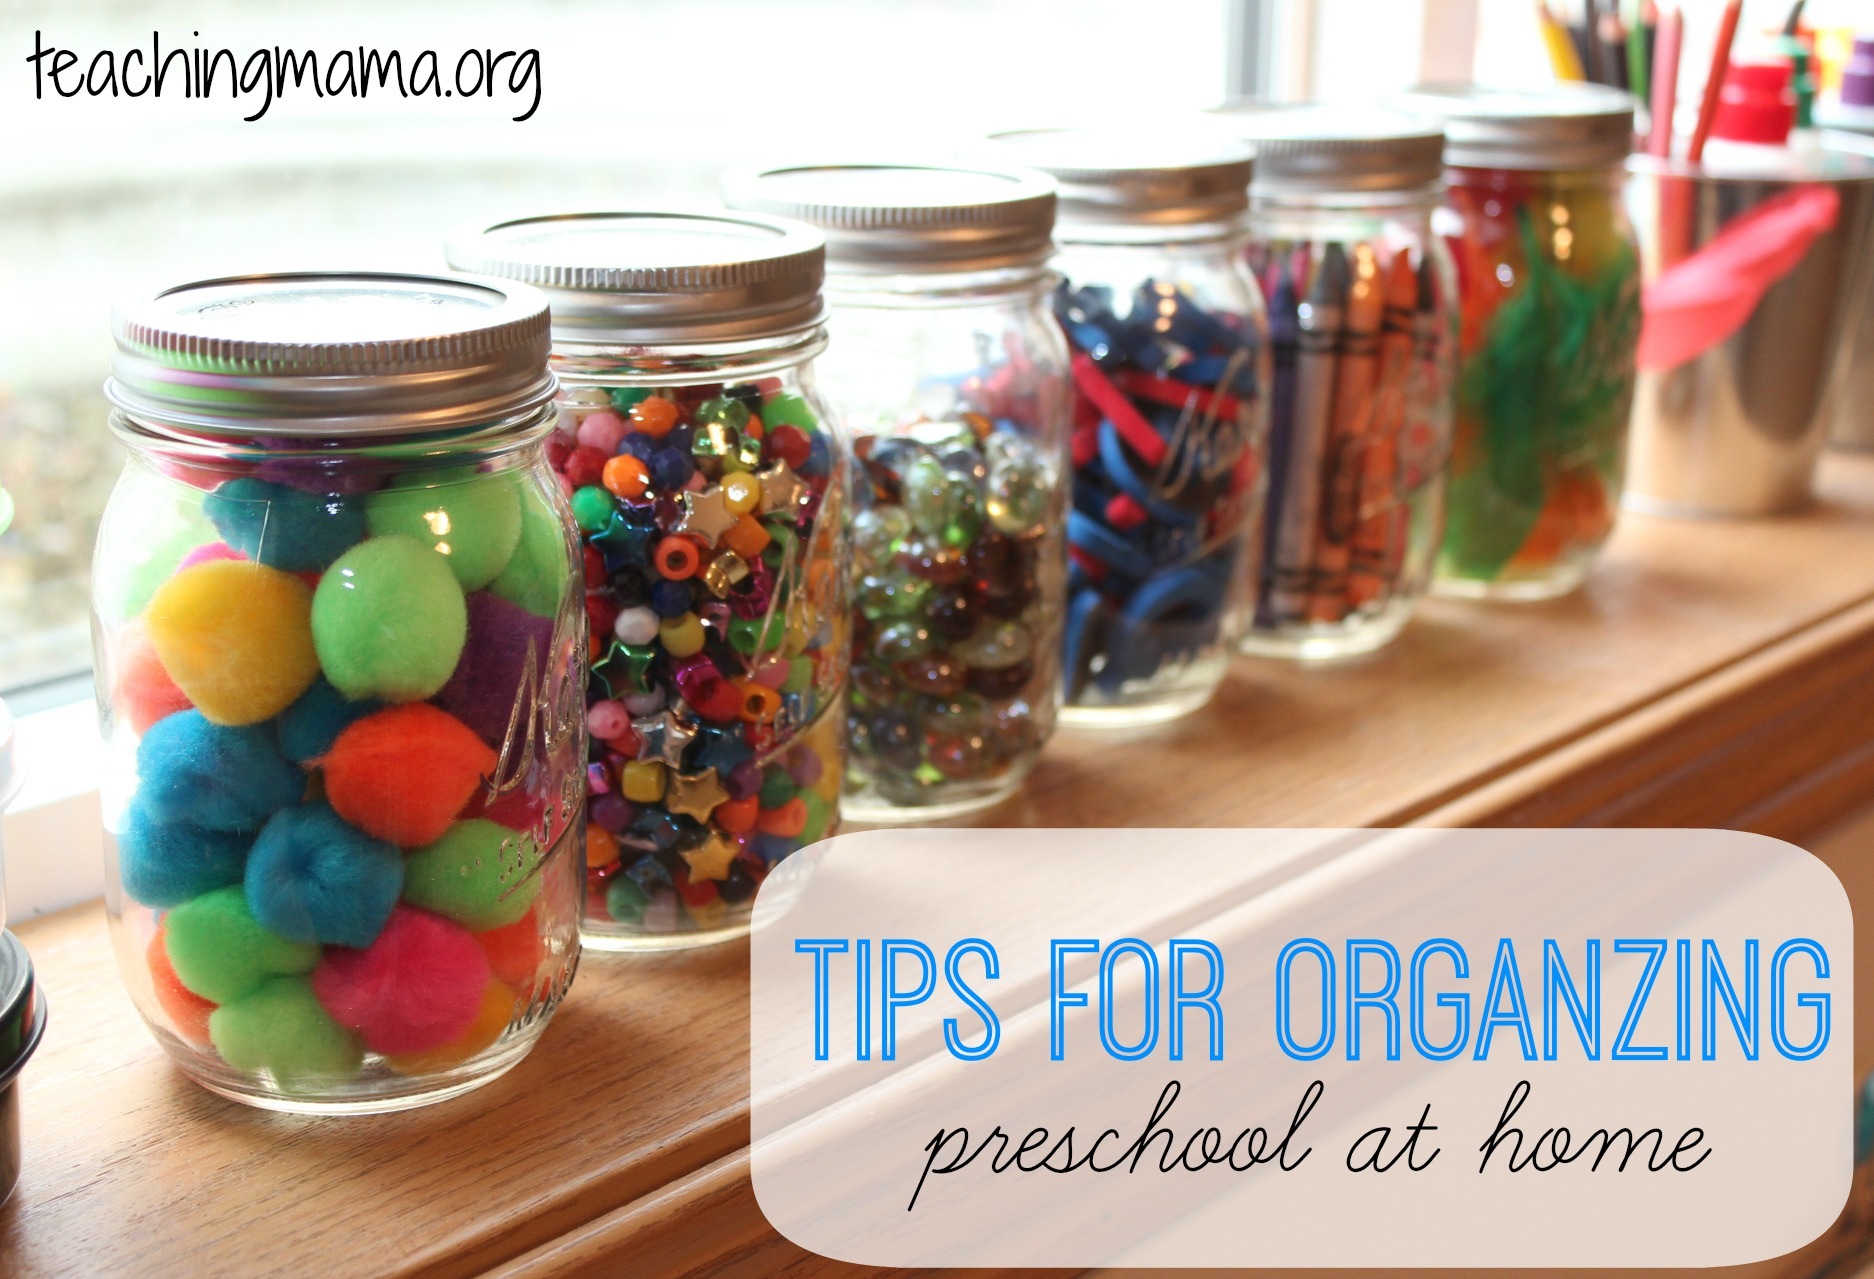 Tips For Organizing Preschool At Home